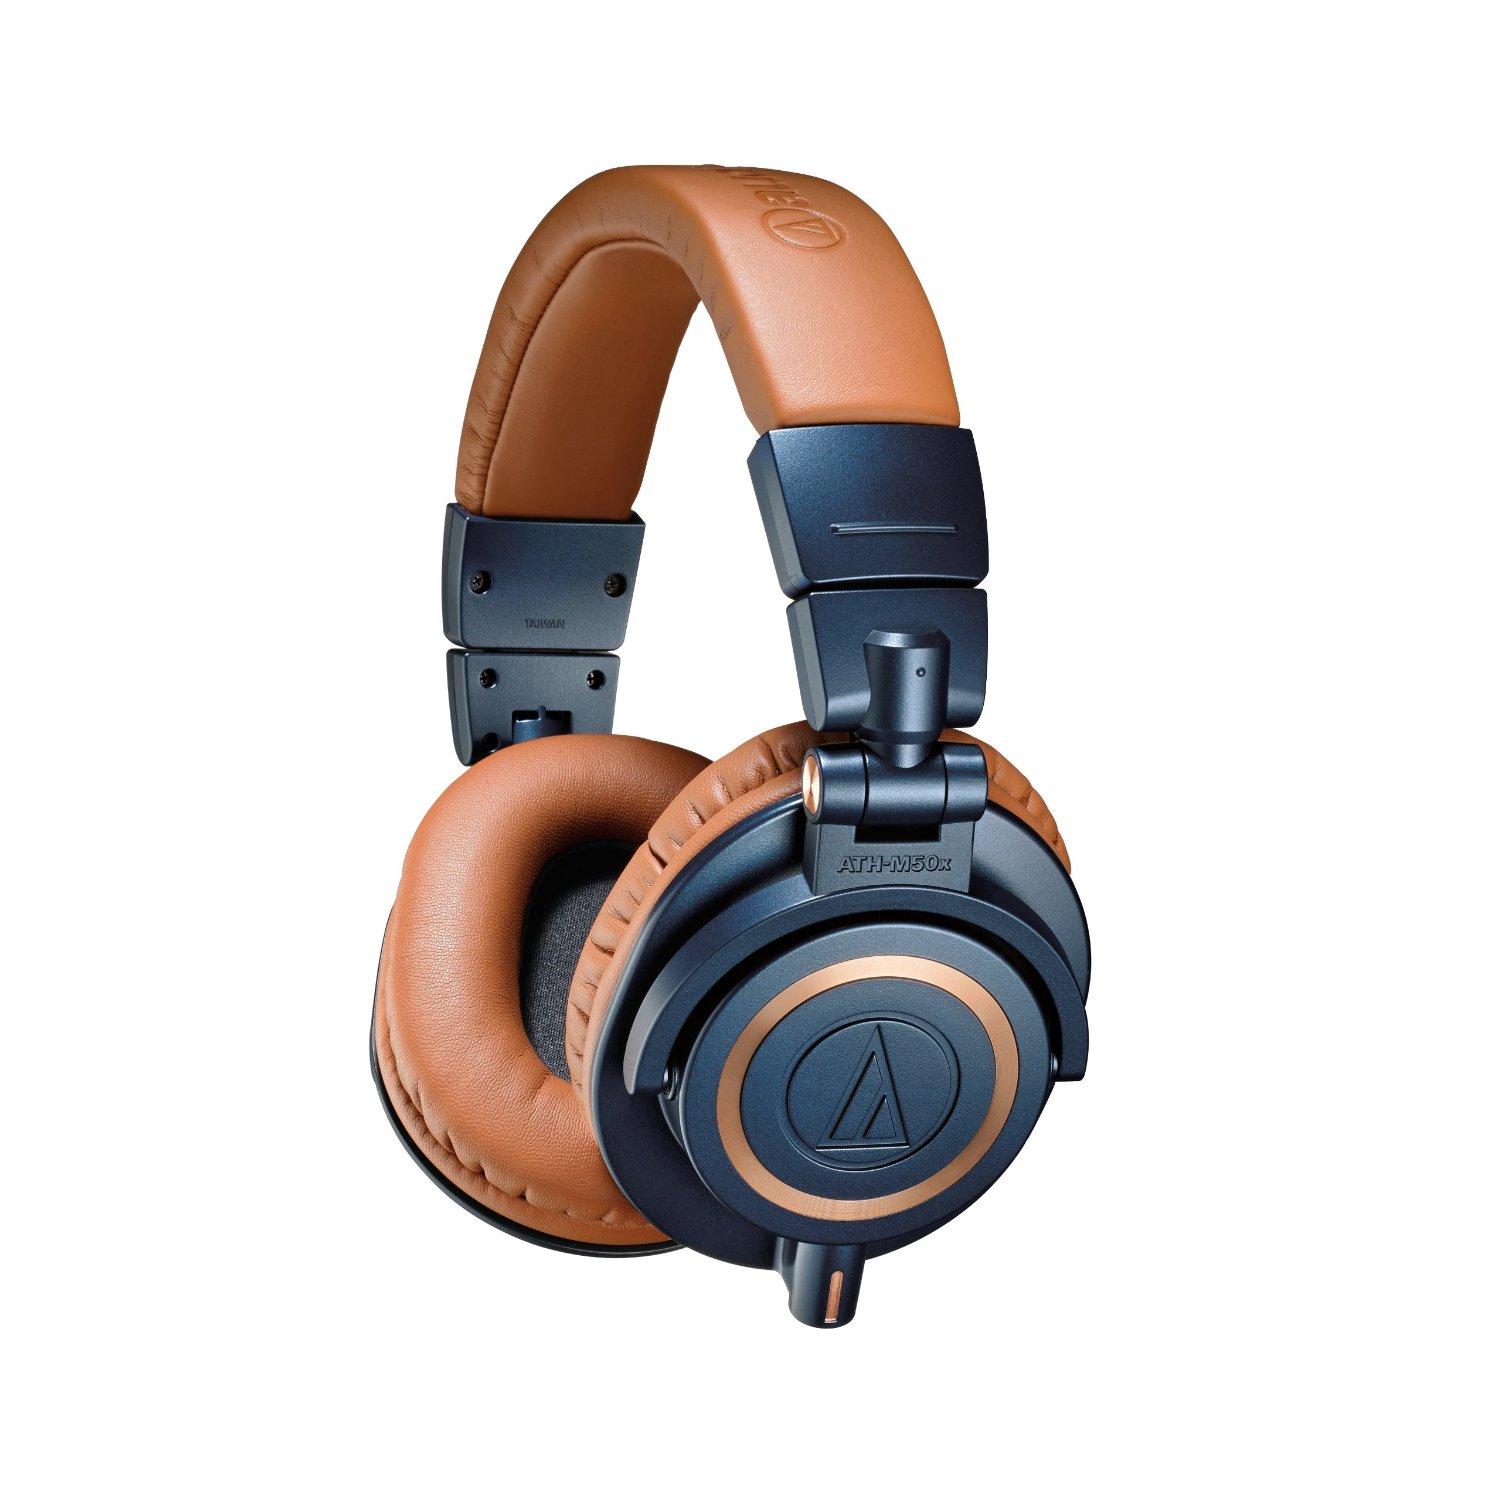 Our favourite colour combination on the Audio Technica Ath-M50x has to be the brown and blue headphones.